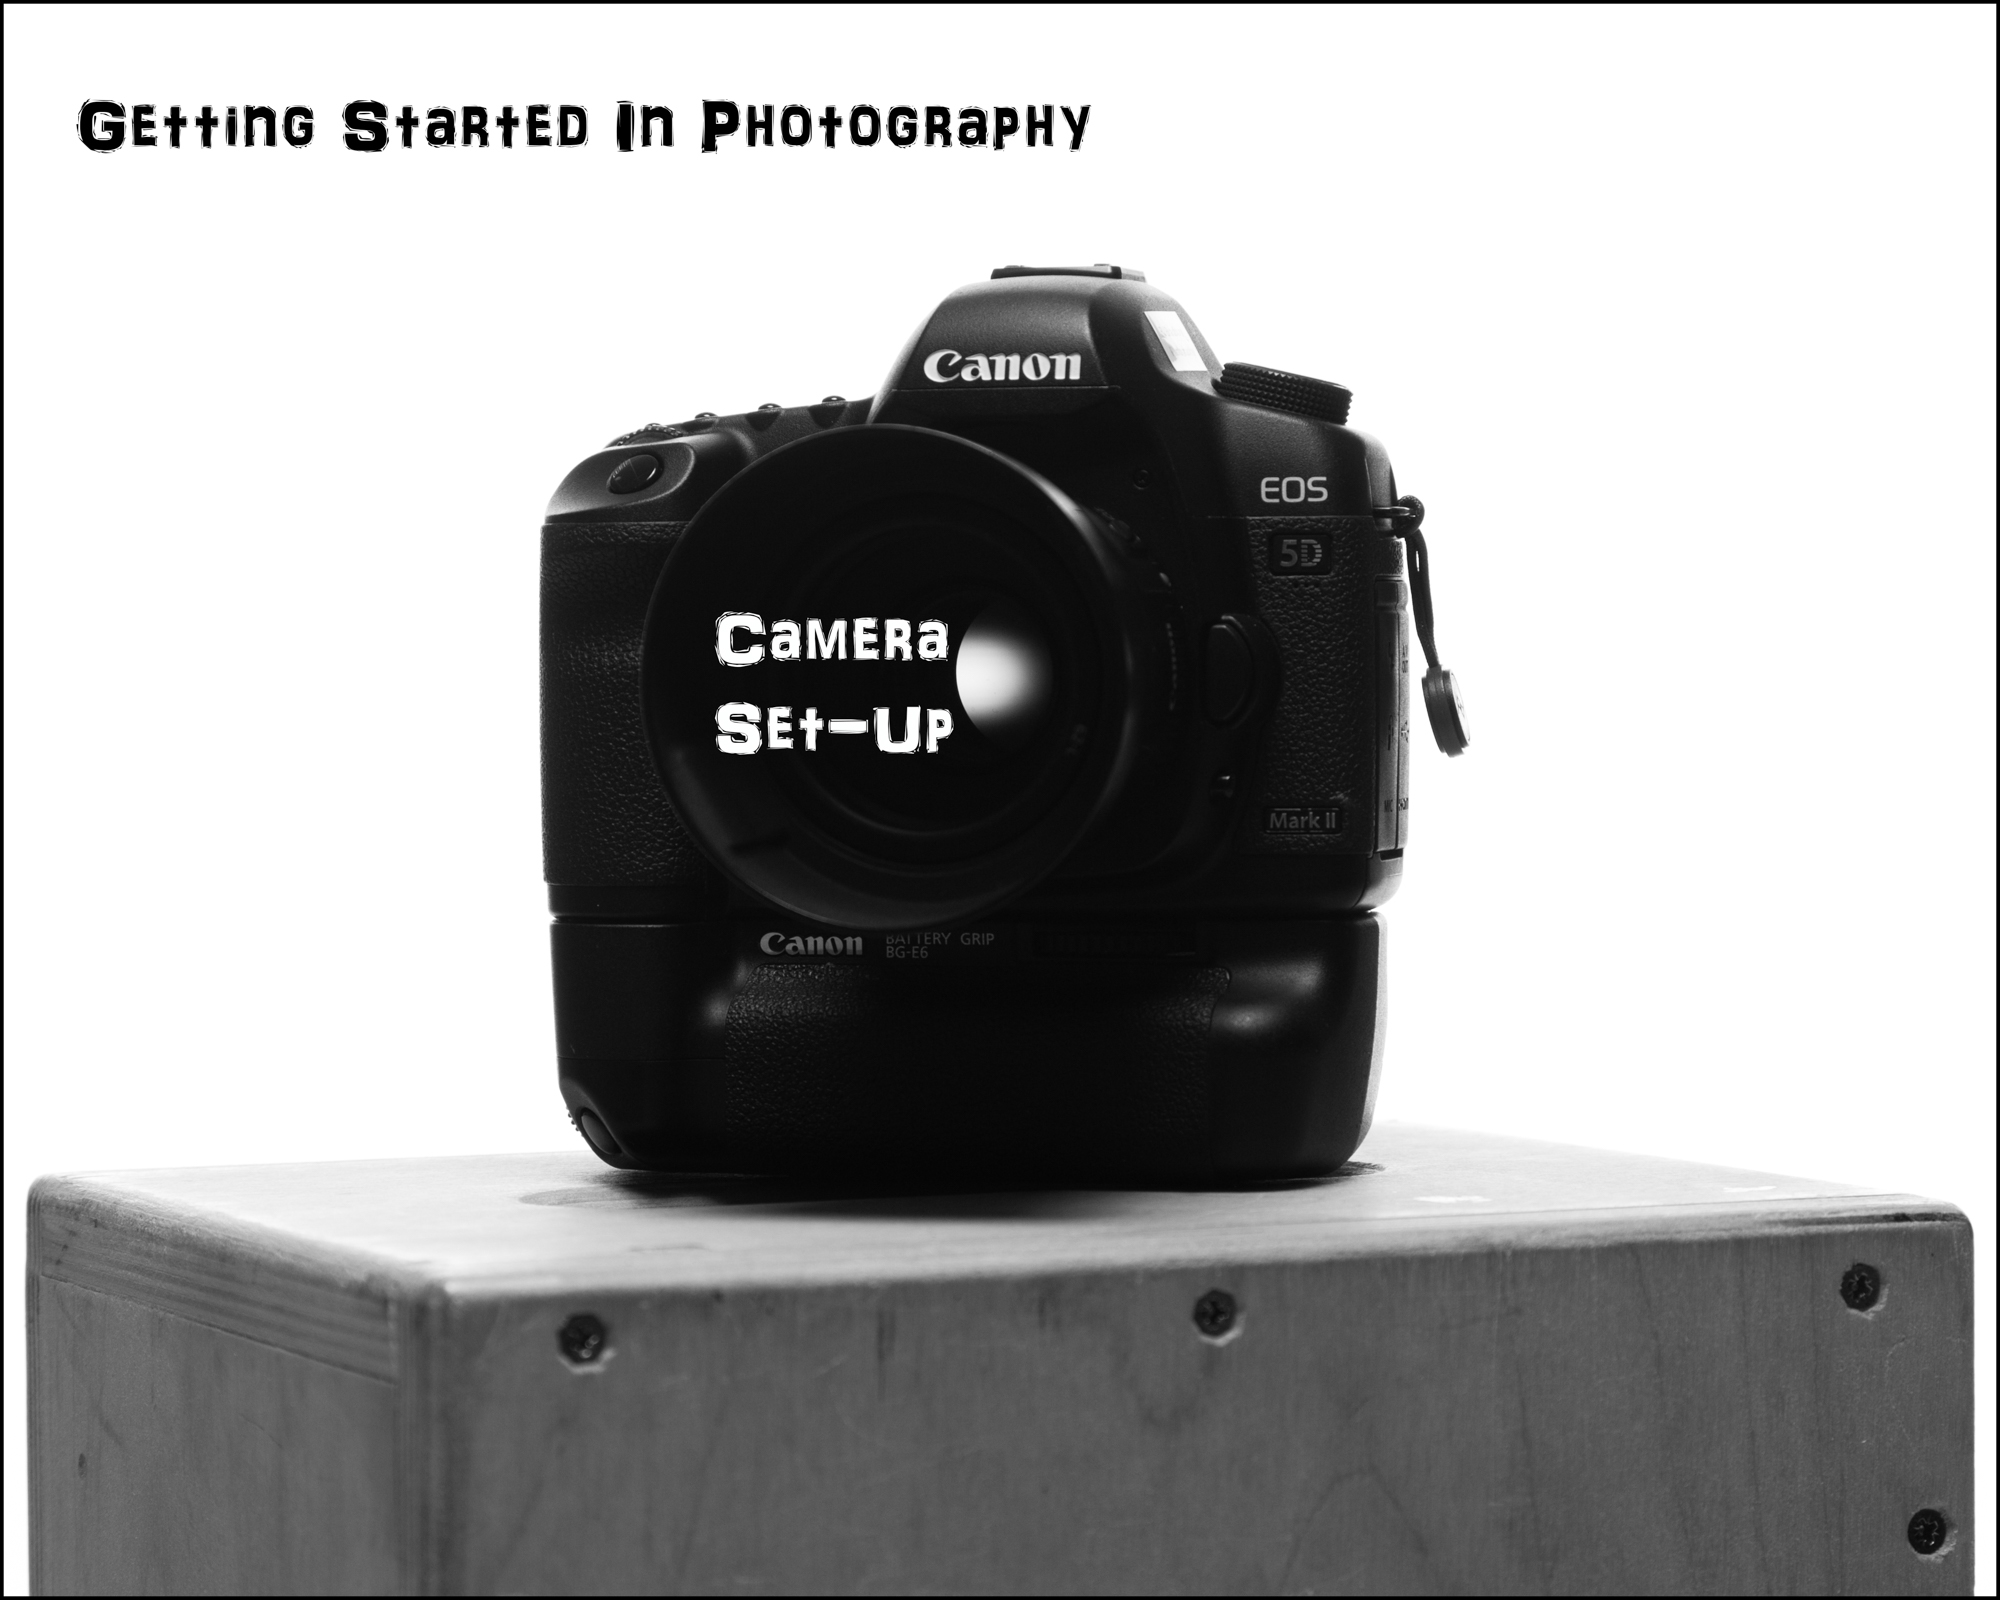 The Craft Blog - Getting Started In Photography - Camera Setup T